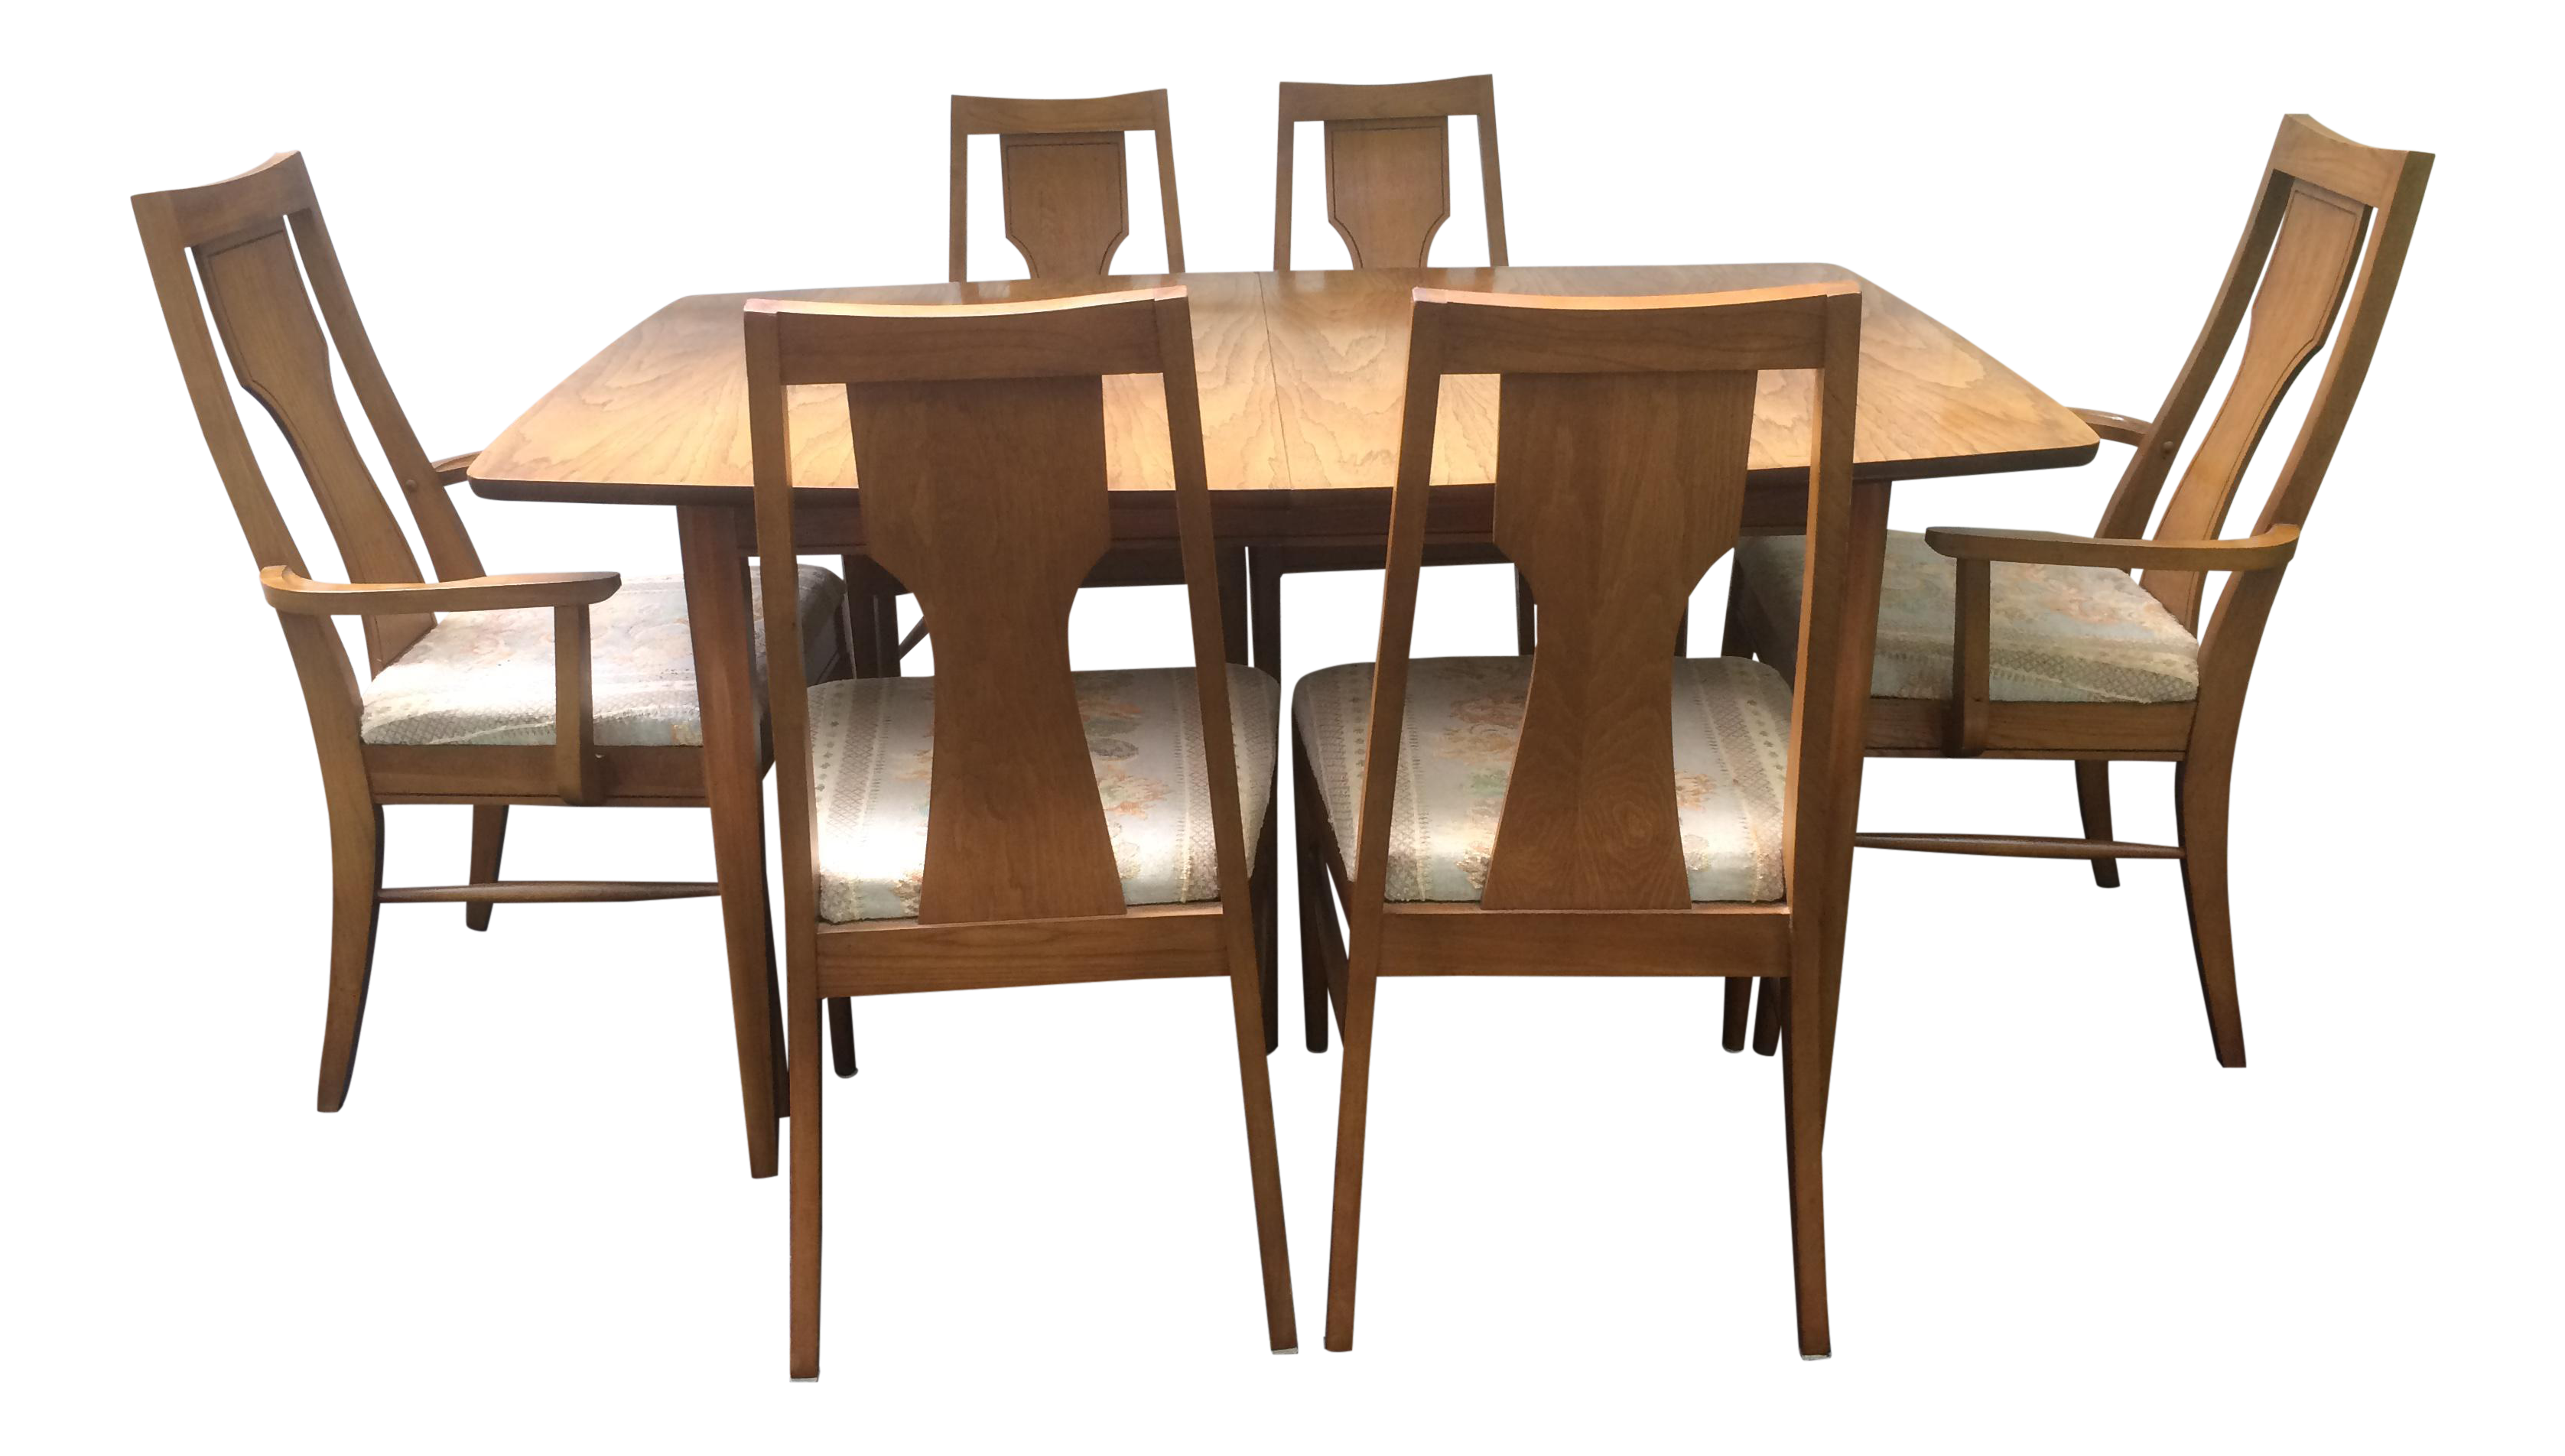 New Images Of Dining Table and Chair Light of Dining Room : kent coffey perspecta series dining table and 6 chairs set 2374 from www.lightofdiningroom.com size 3354 x 1904 png 3899kB